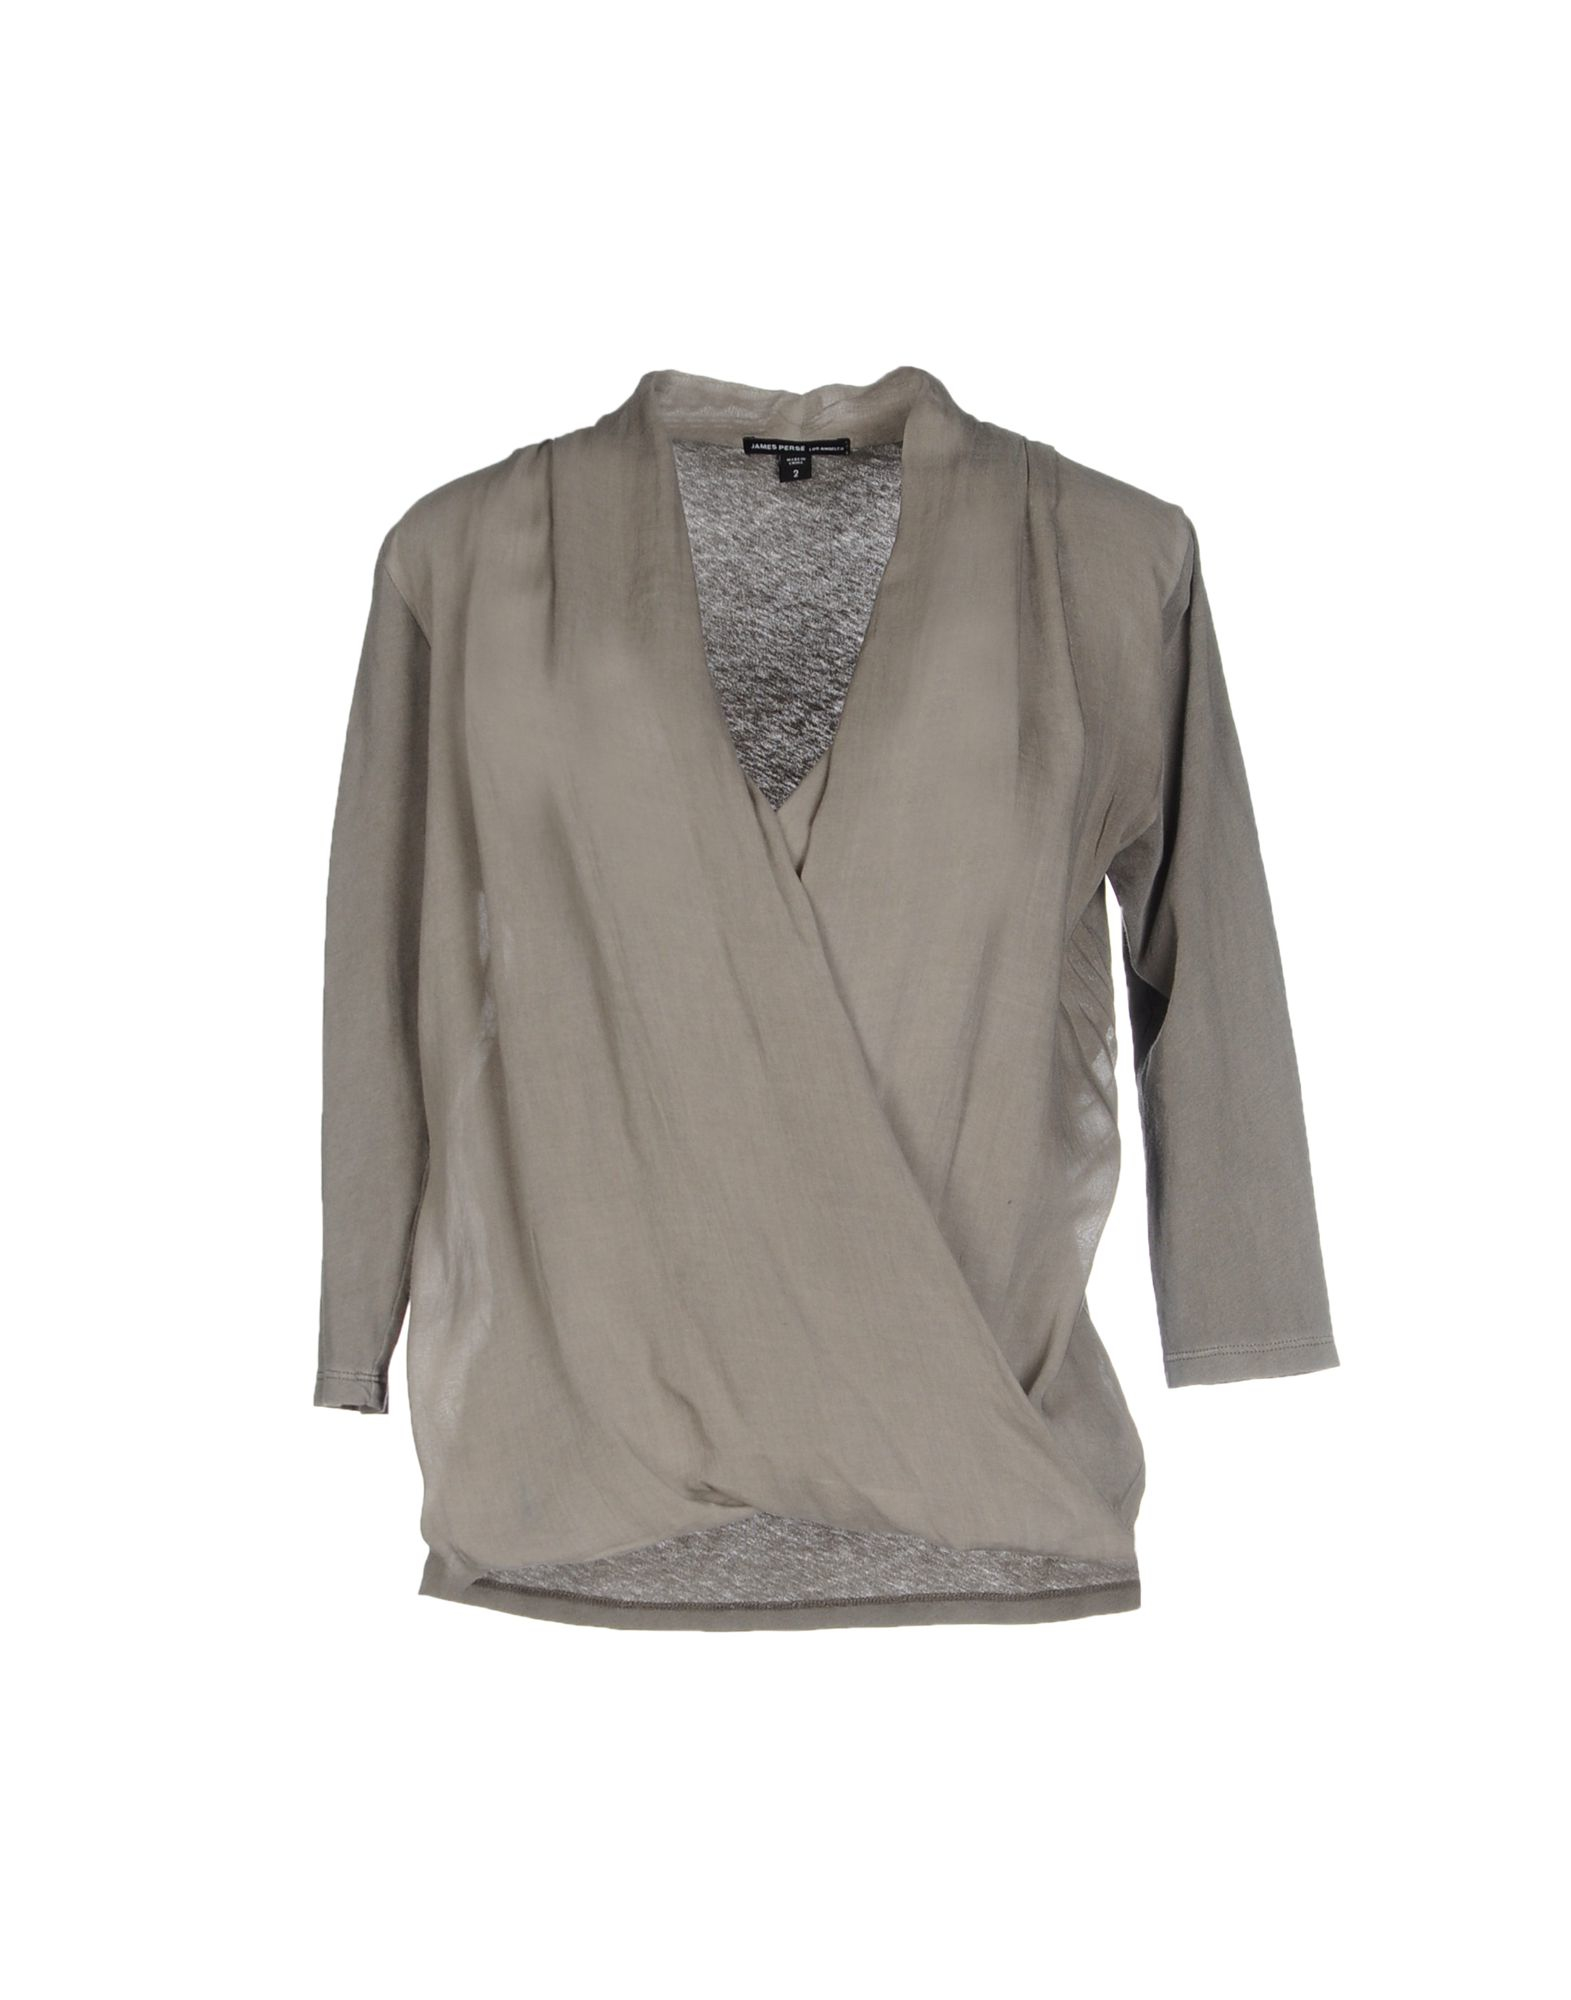 James perse t shirt in natural lyst for James perse t shirts sale